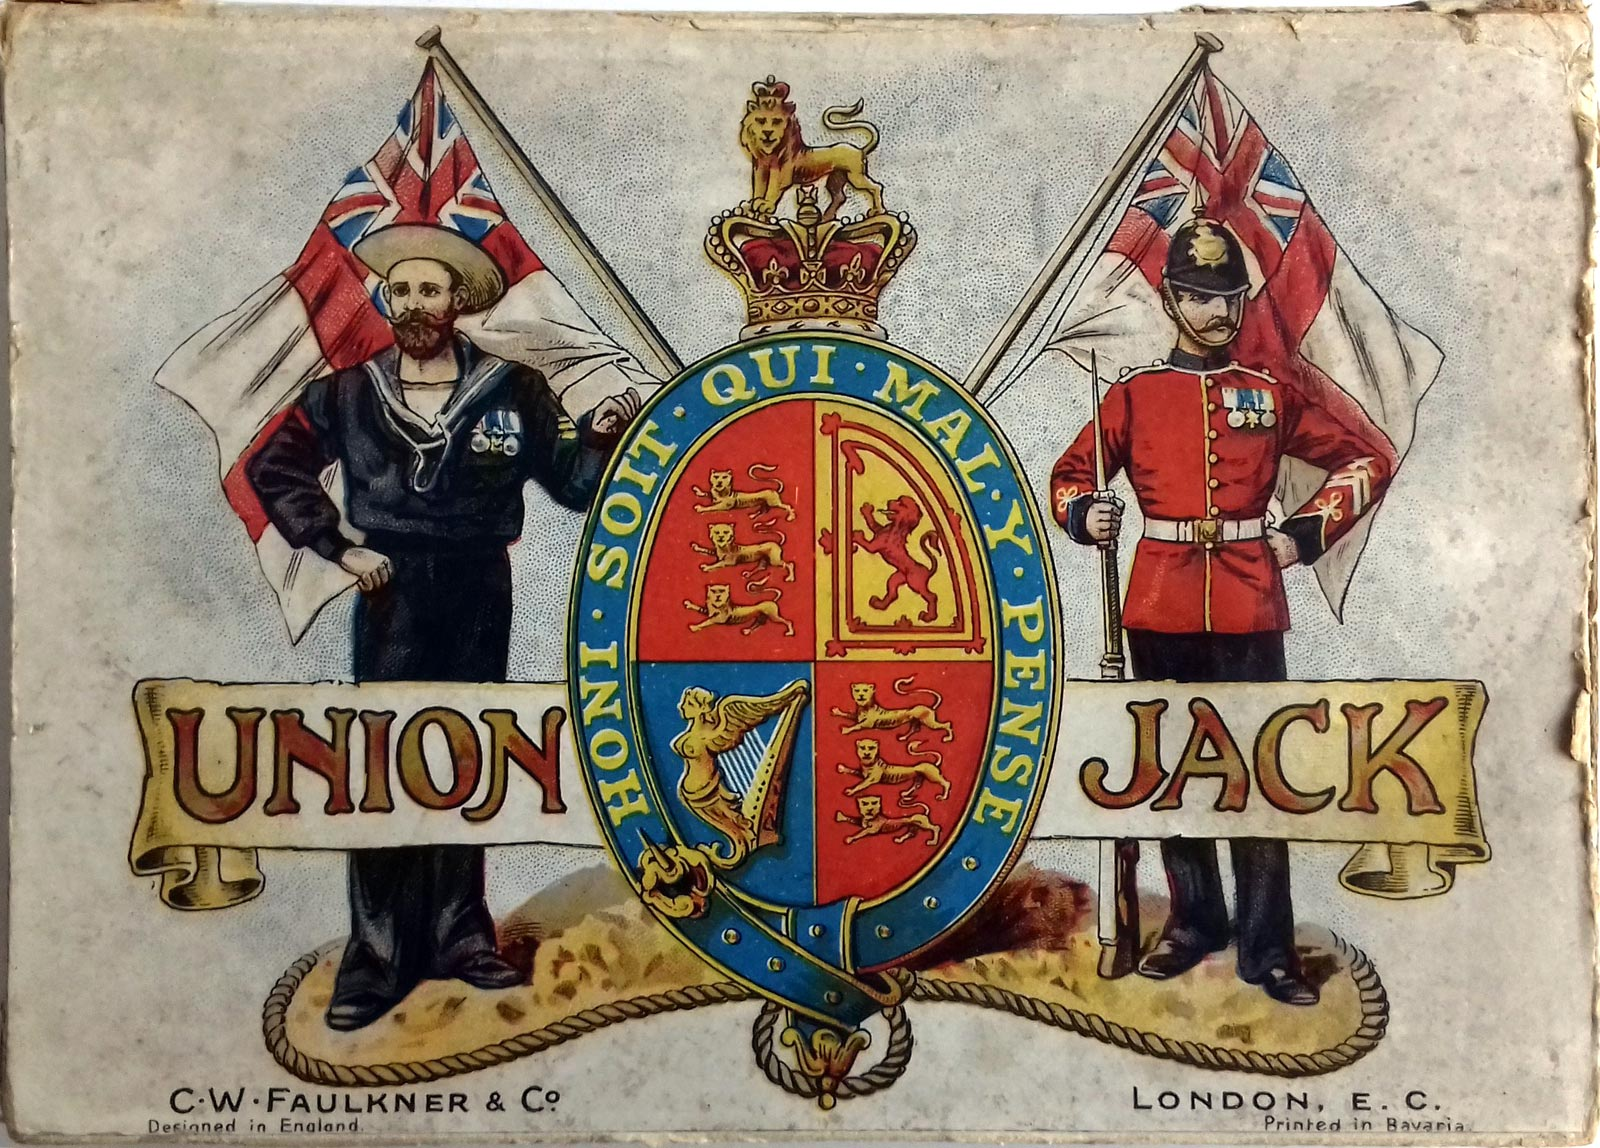 Union Jack card game published by C.W. Faulkner & Co., c.1897